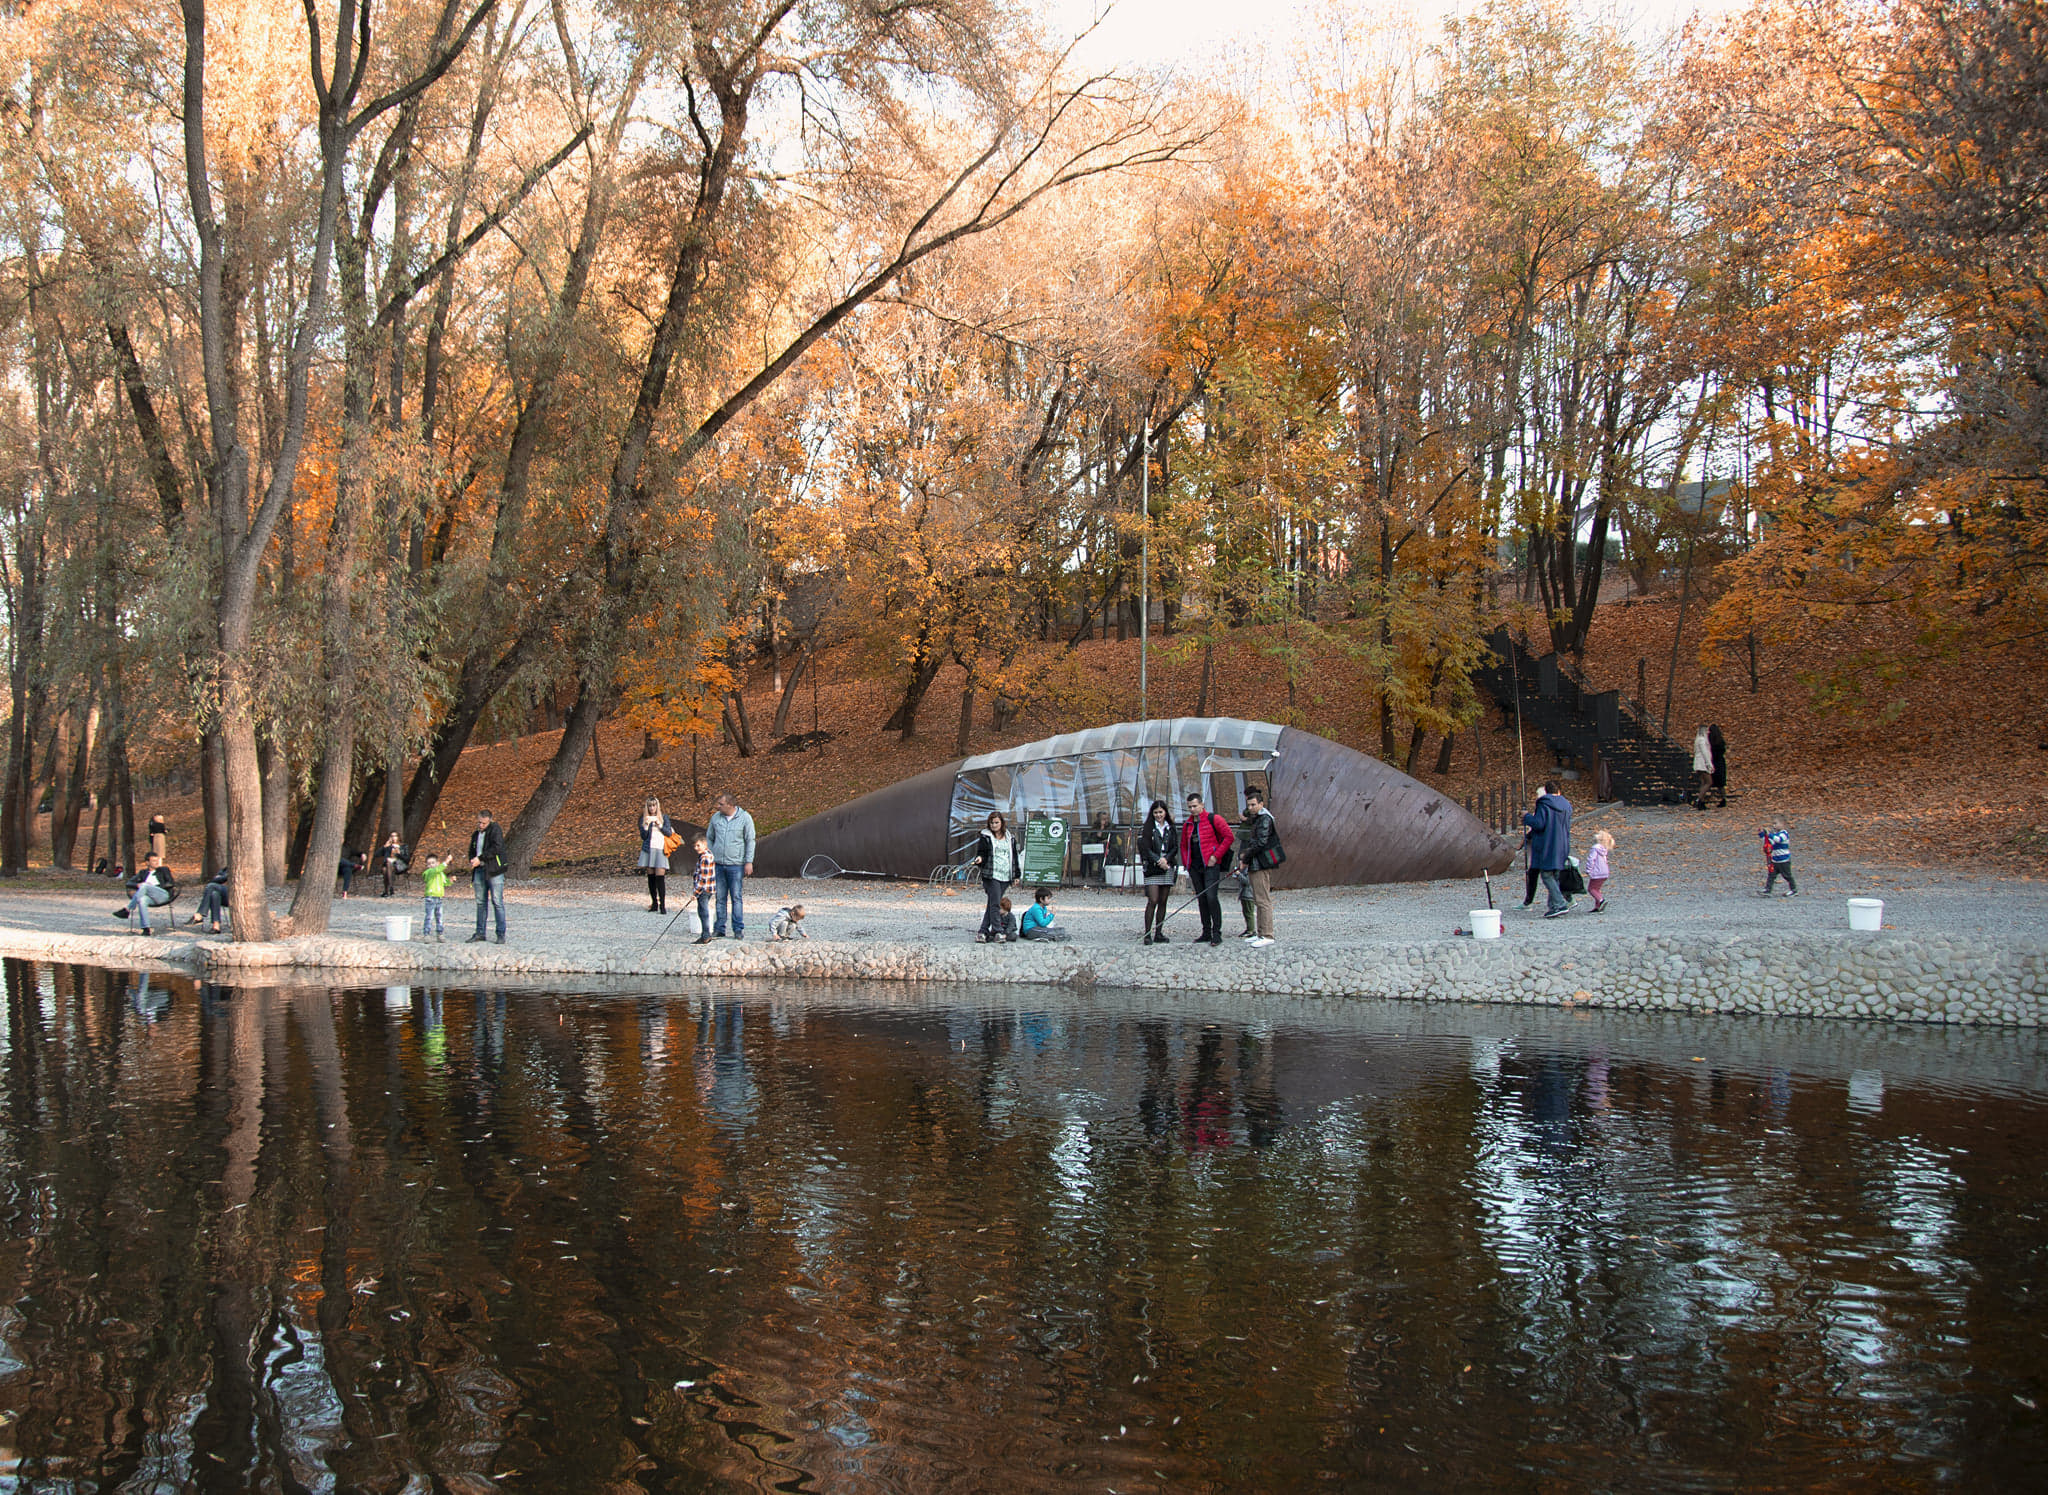 Scandinavian Design in the Eastern-European Park in Kharkiv, Ukraine